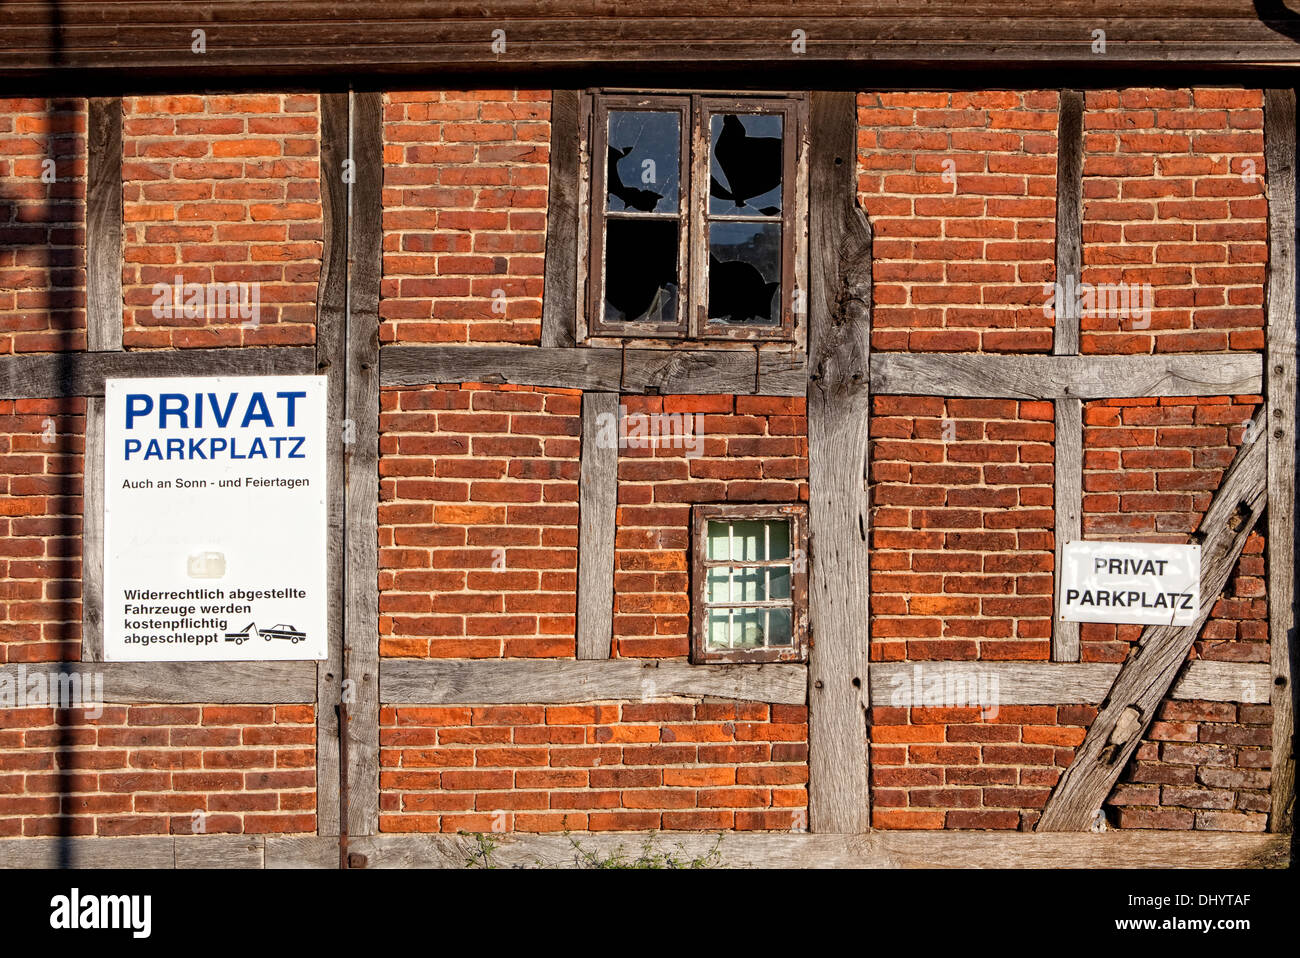 Old wall with no parking signs, private car park, Germany, Europe - Stock Image